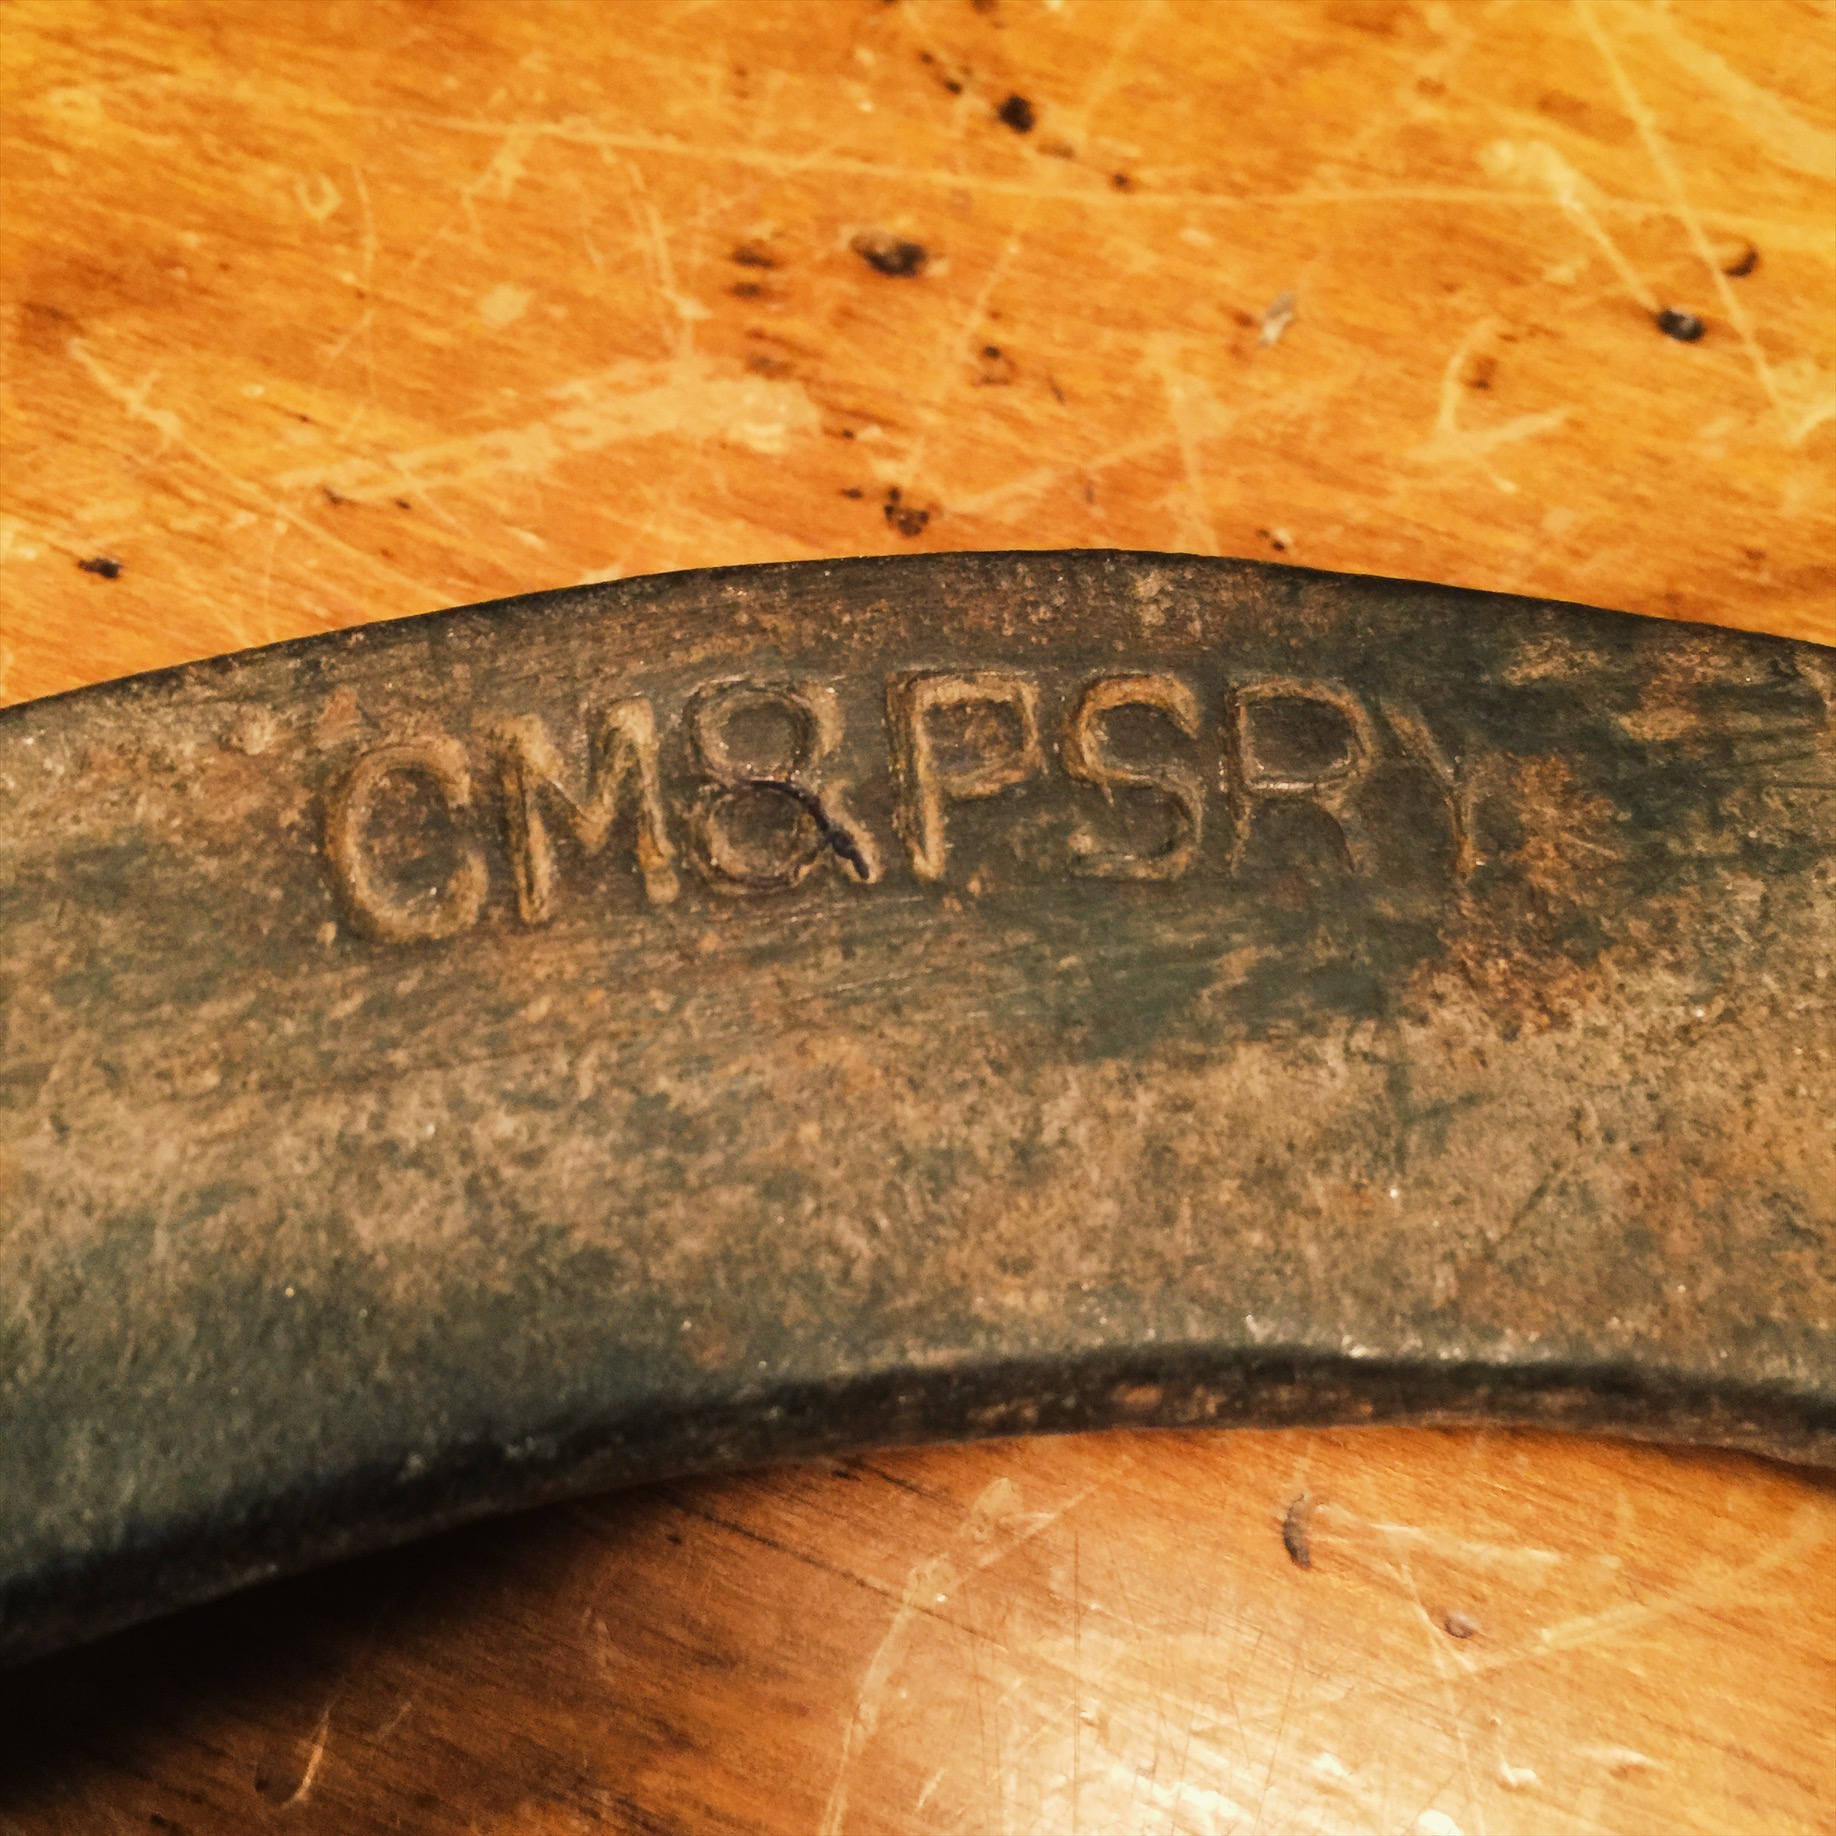 Rare CM&PSRY Railroad Wrench - Chicago Milwaukee Puget Sound Railroad - Milwaukee Road - Open Ended Curved - Railroad Collectible - 1900s